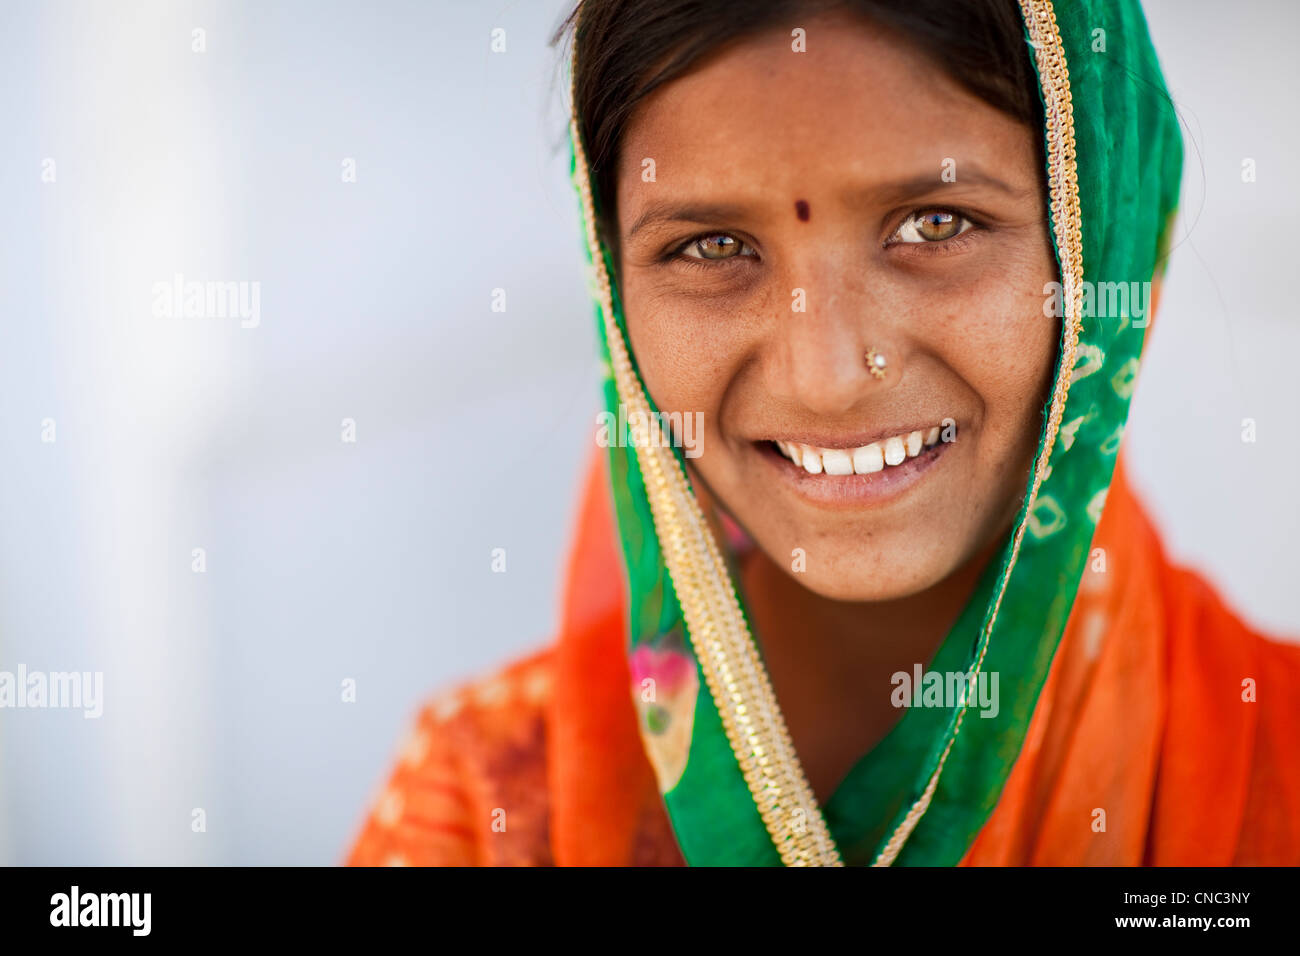 India, Rajasthan state, Pushkar, portrait of a young female singer from a gypsy family - Stock Image